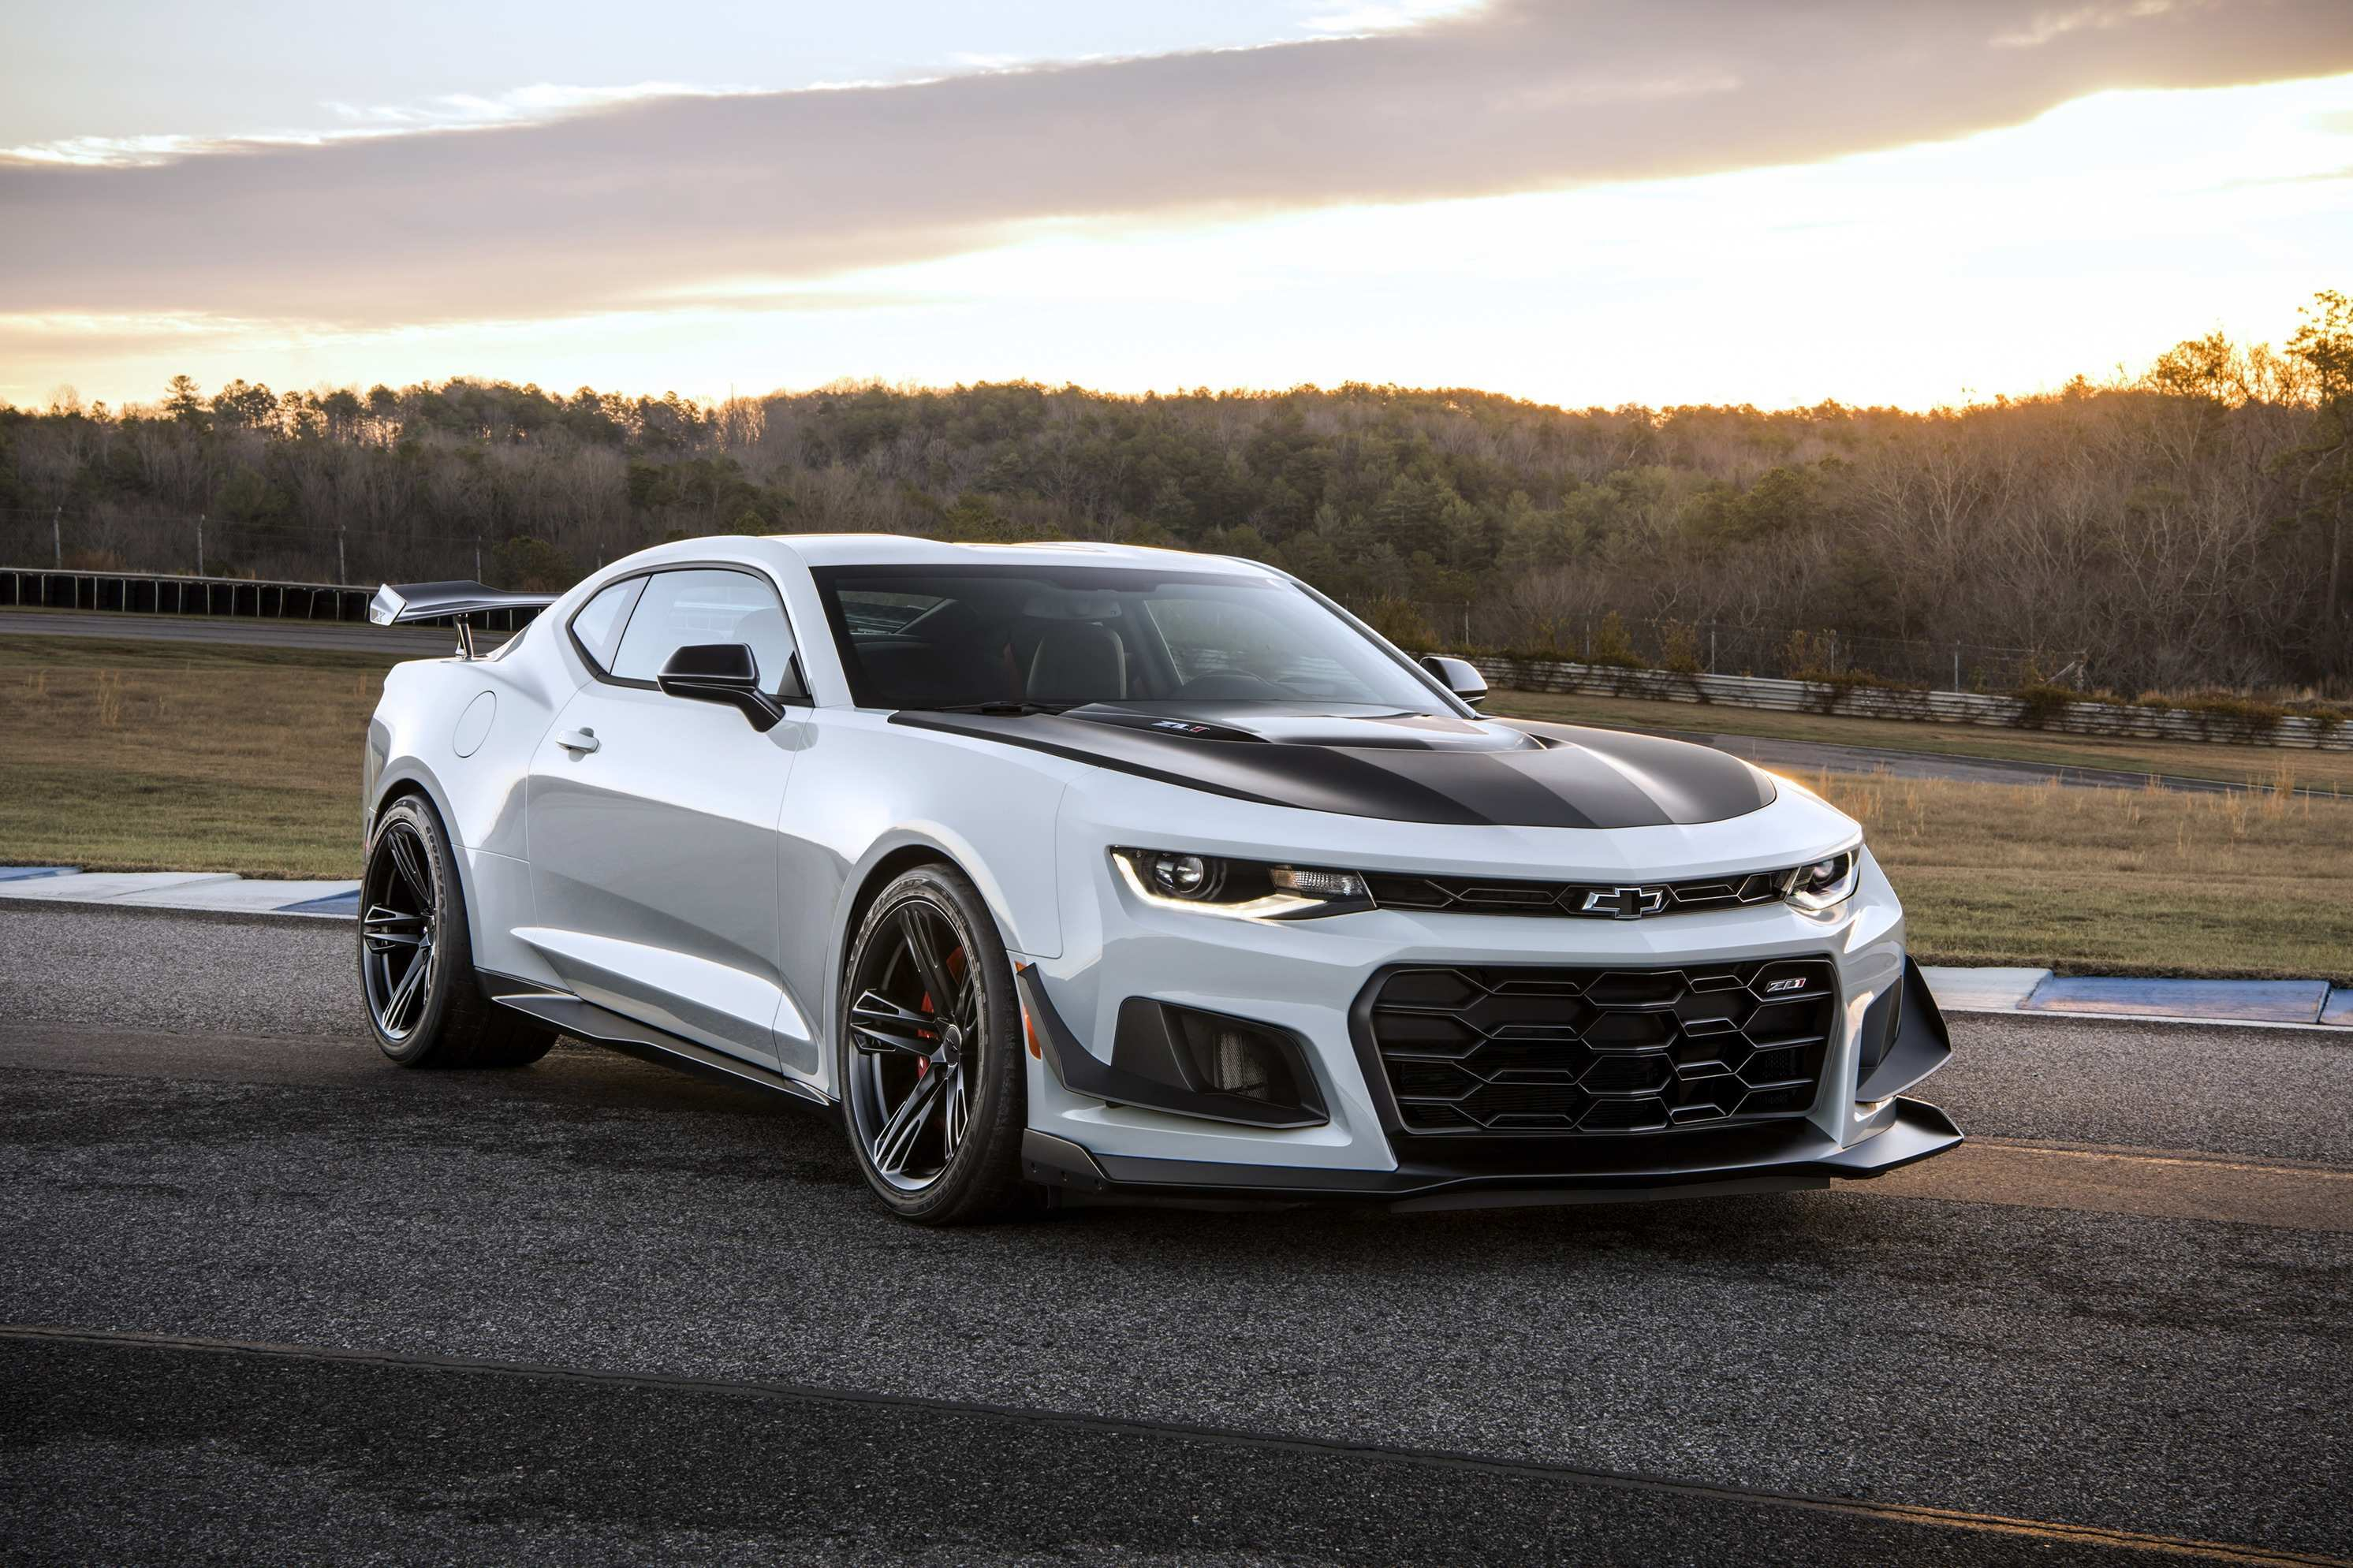 13 All New 2019 Chevrolet Camaro Engine Rumors for 2019 Chevrolet Camaro Engine